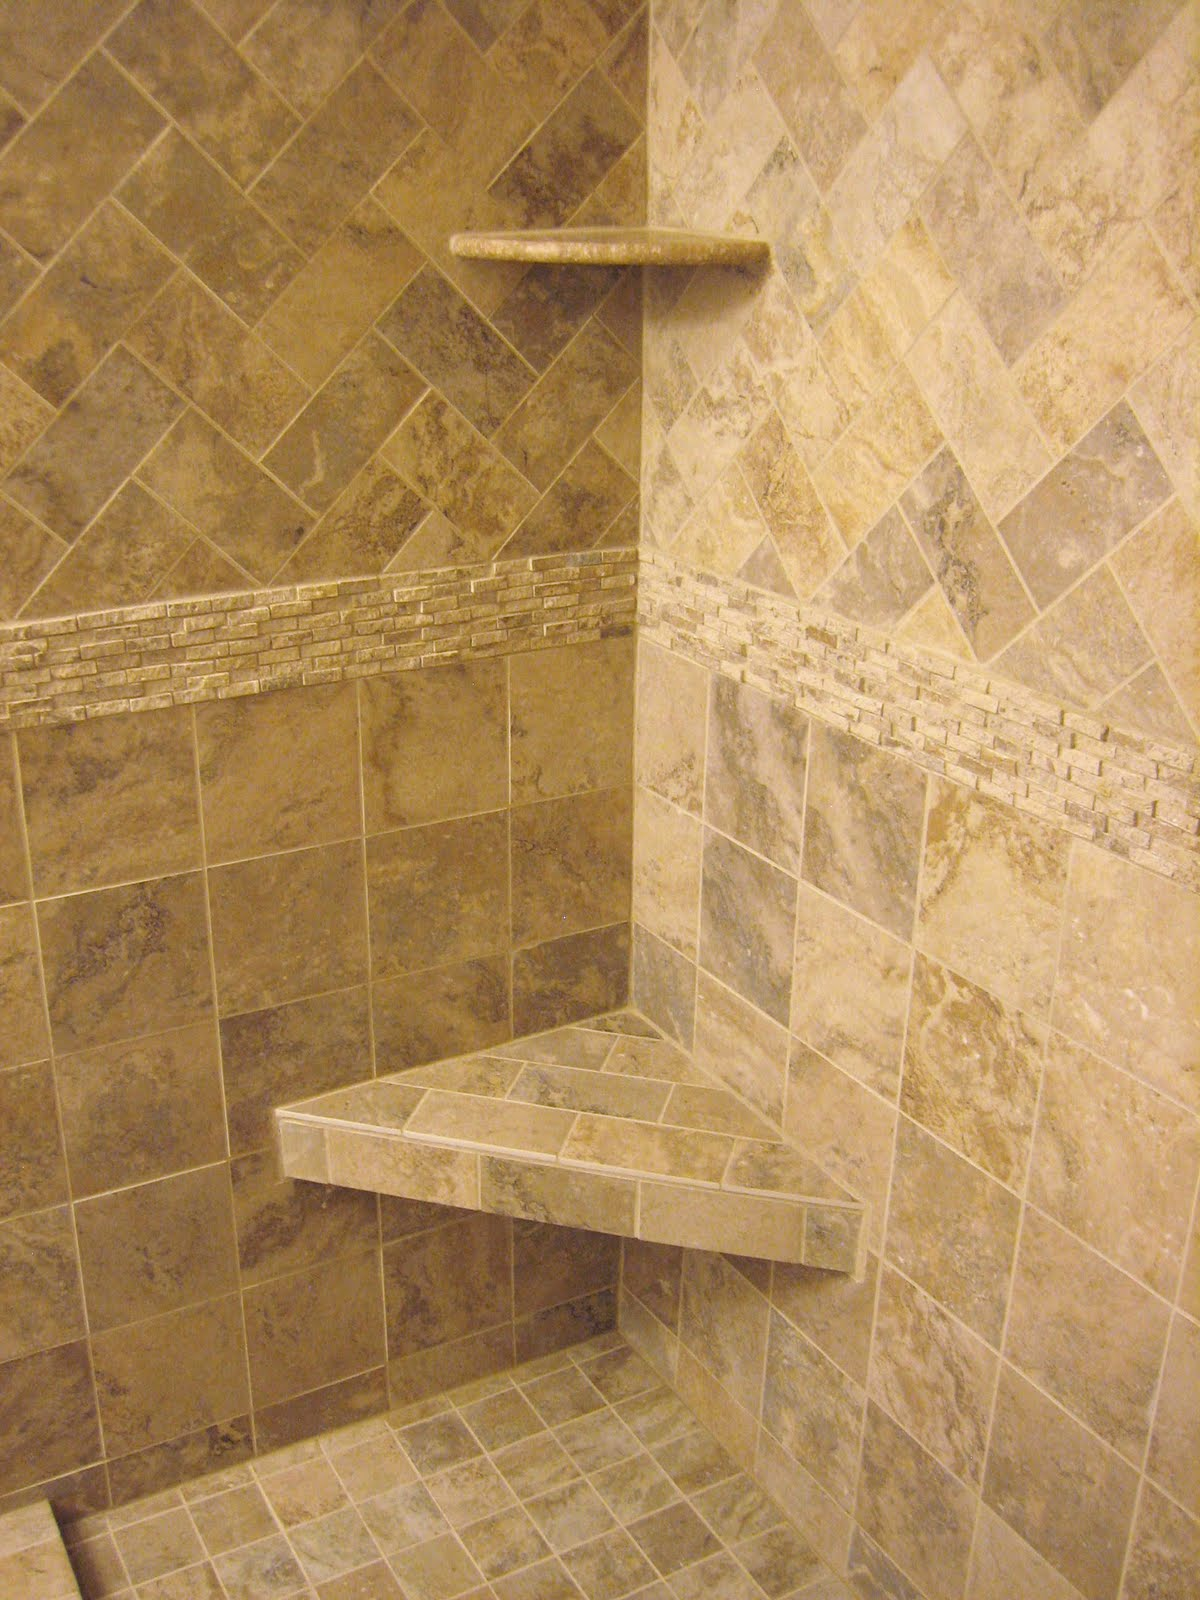 H winter showroom blog june 2010 for Bathroom wall tiles designs